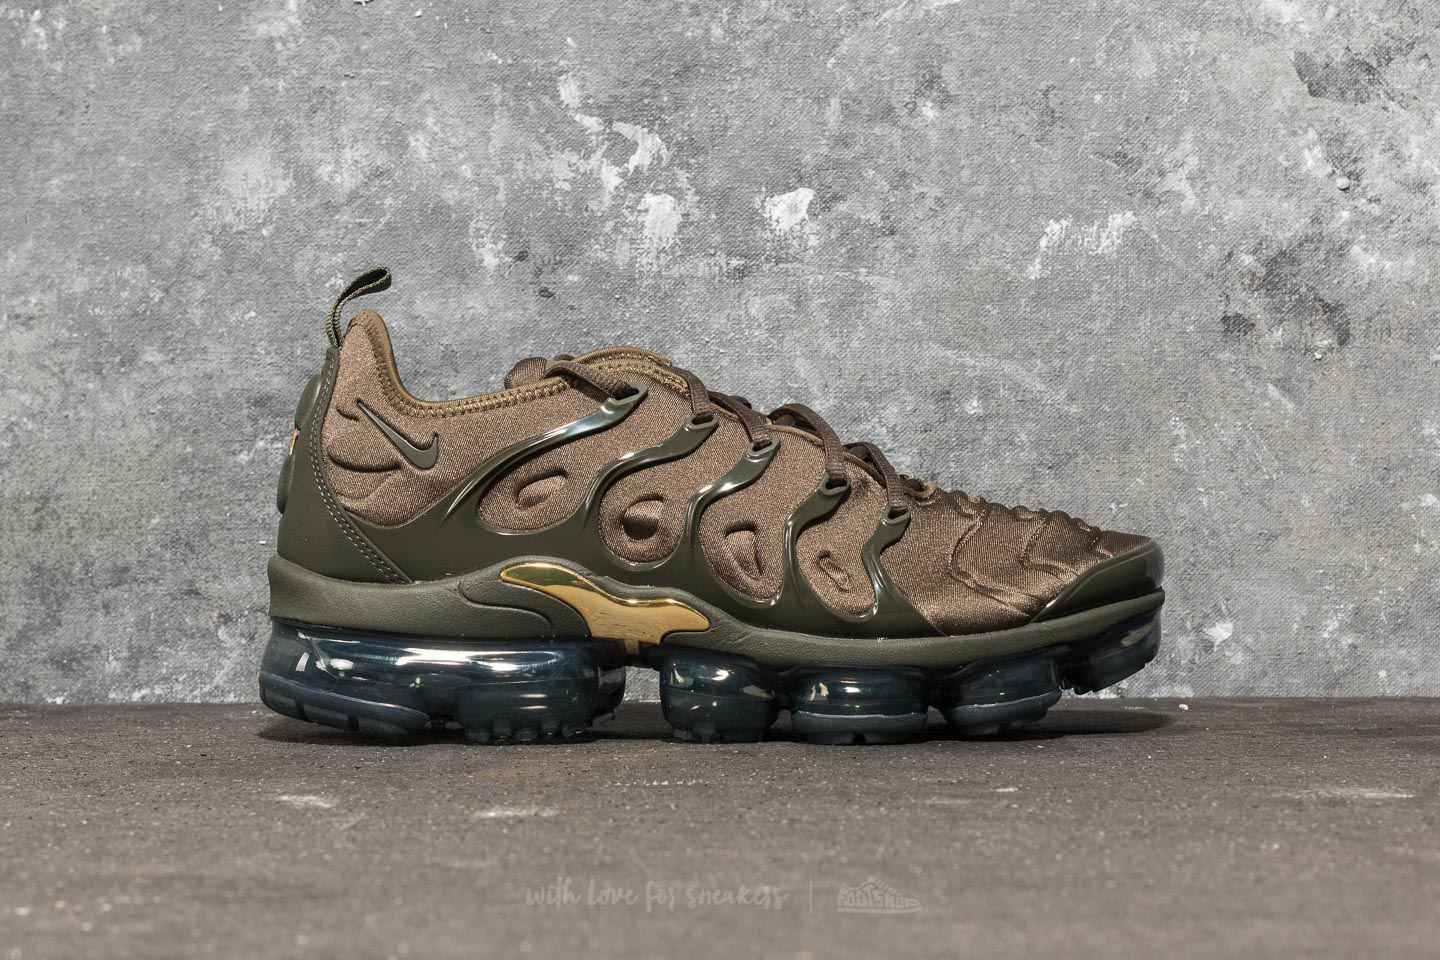 337baf6ea8d Lyst - Nike Air Vapormax Plus Cargo Khaki  Sequoia-clay Green in ...